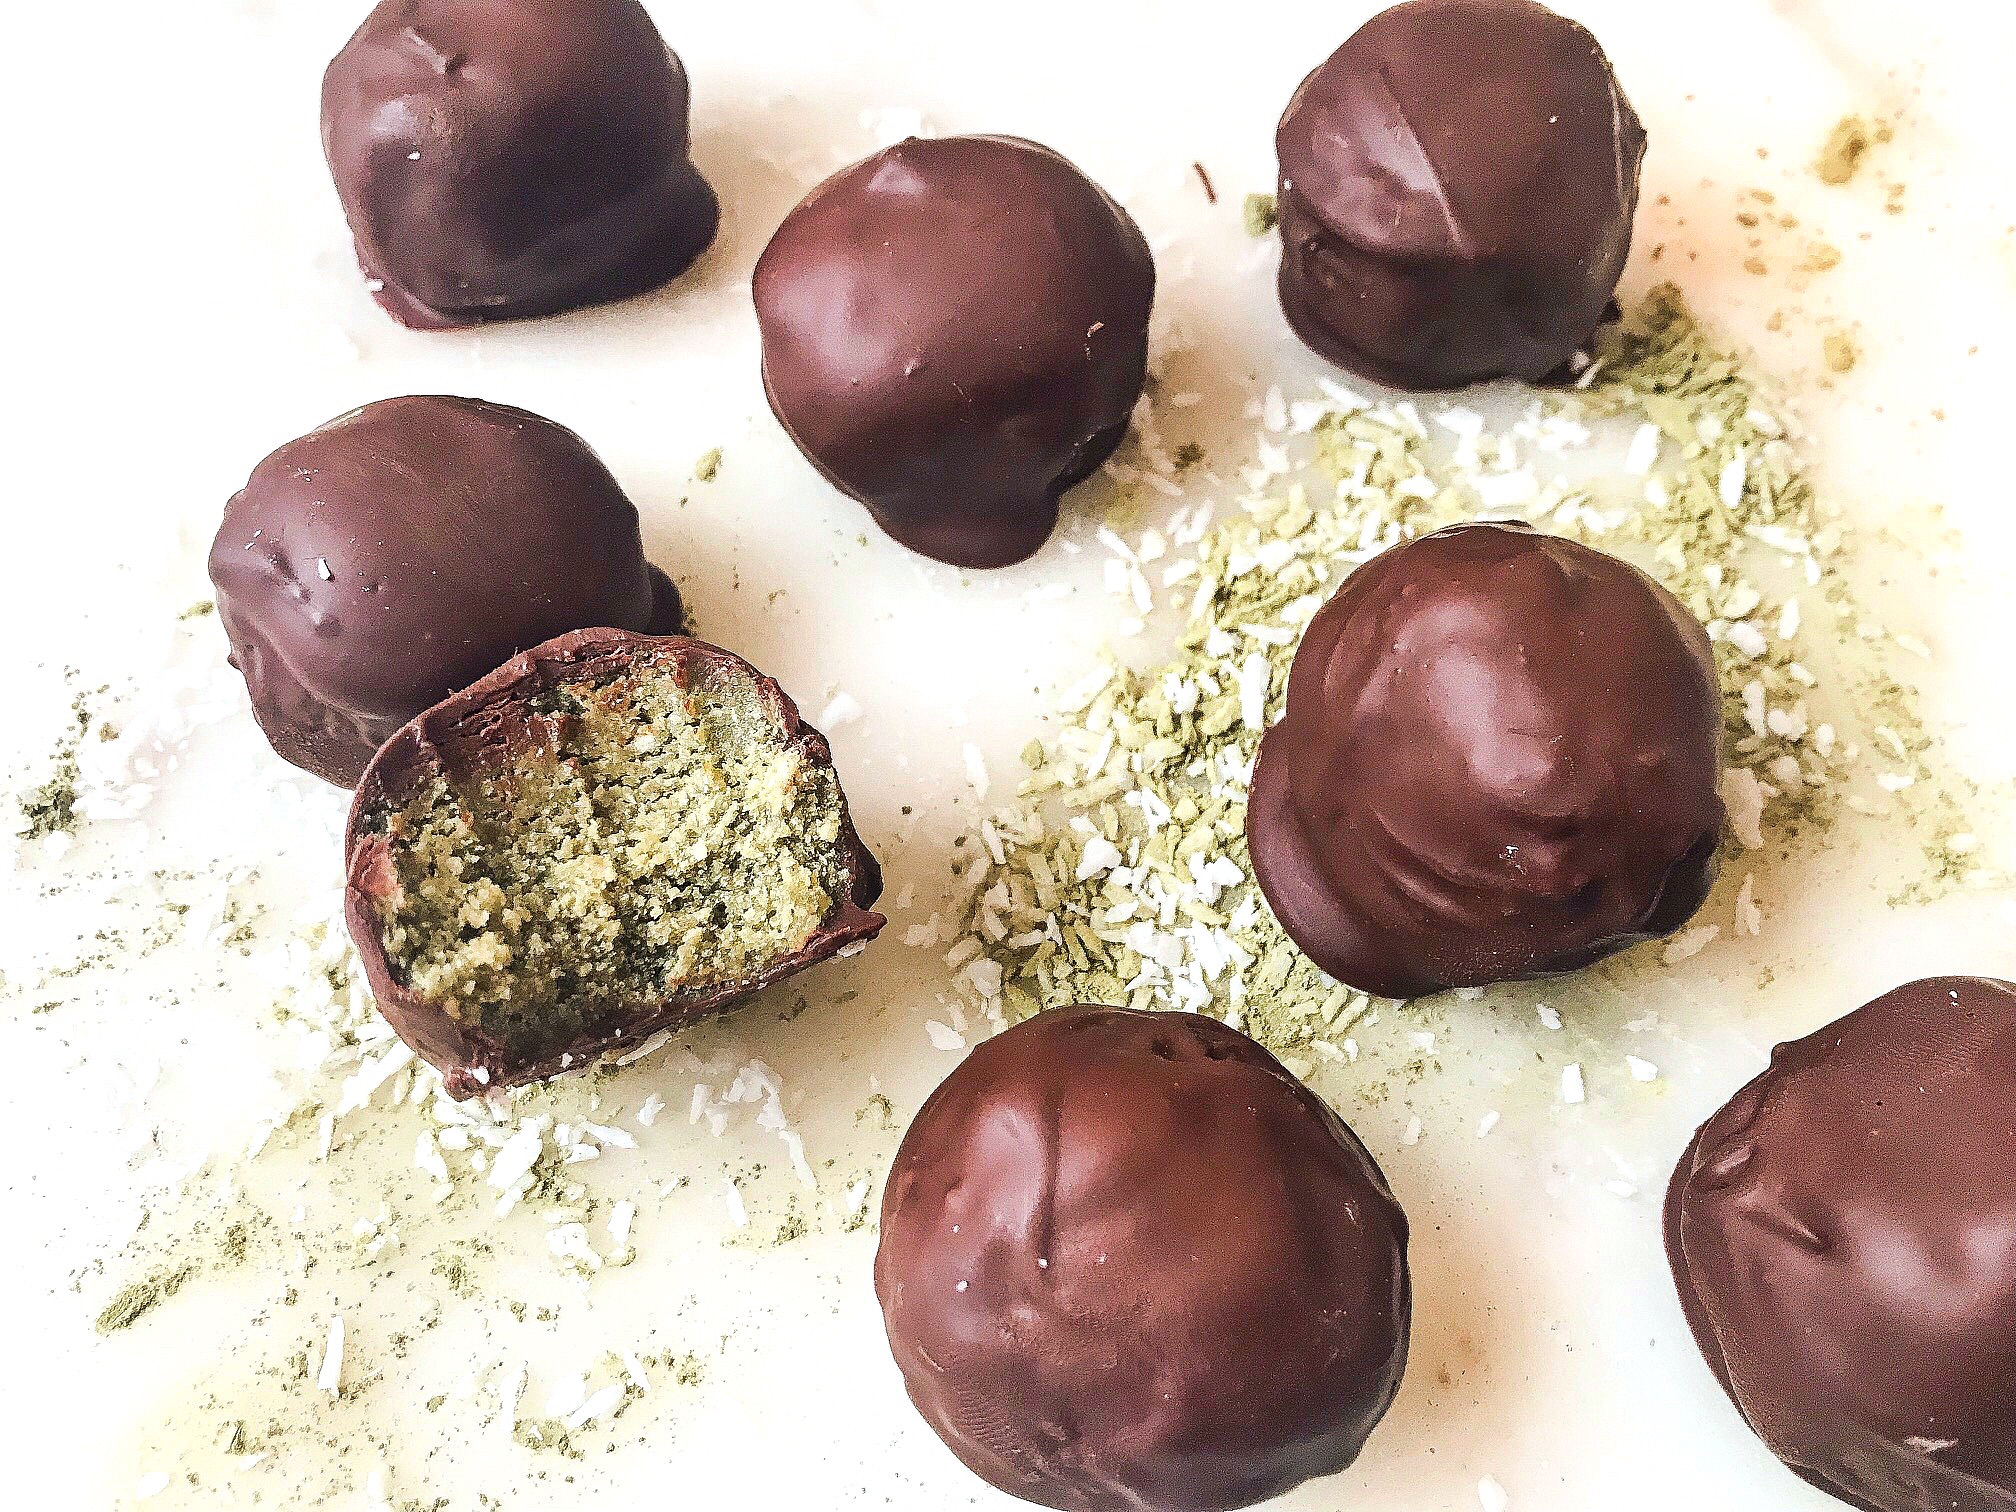 Matcha Coconut Protein Balls made with collagen and coated in vegan chocolate. Photo credit @hostofhealth.